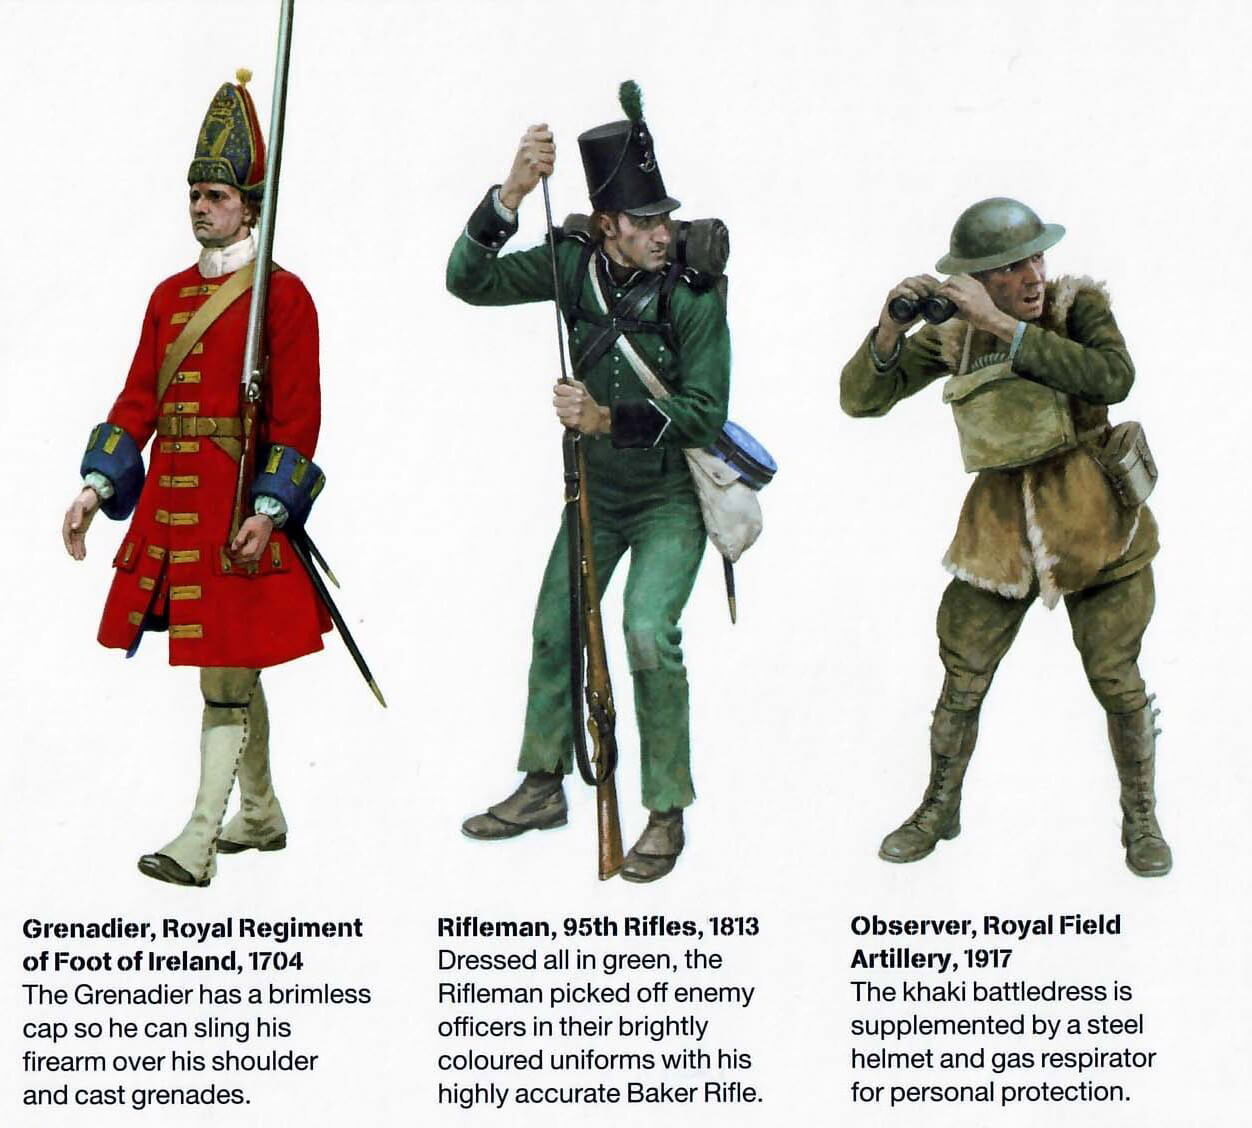 British soldiers during the centuries: uniforms pre-modern camo